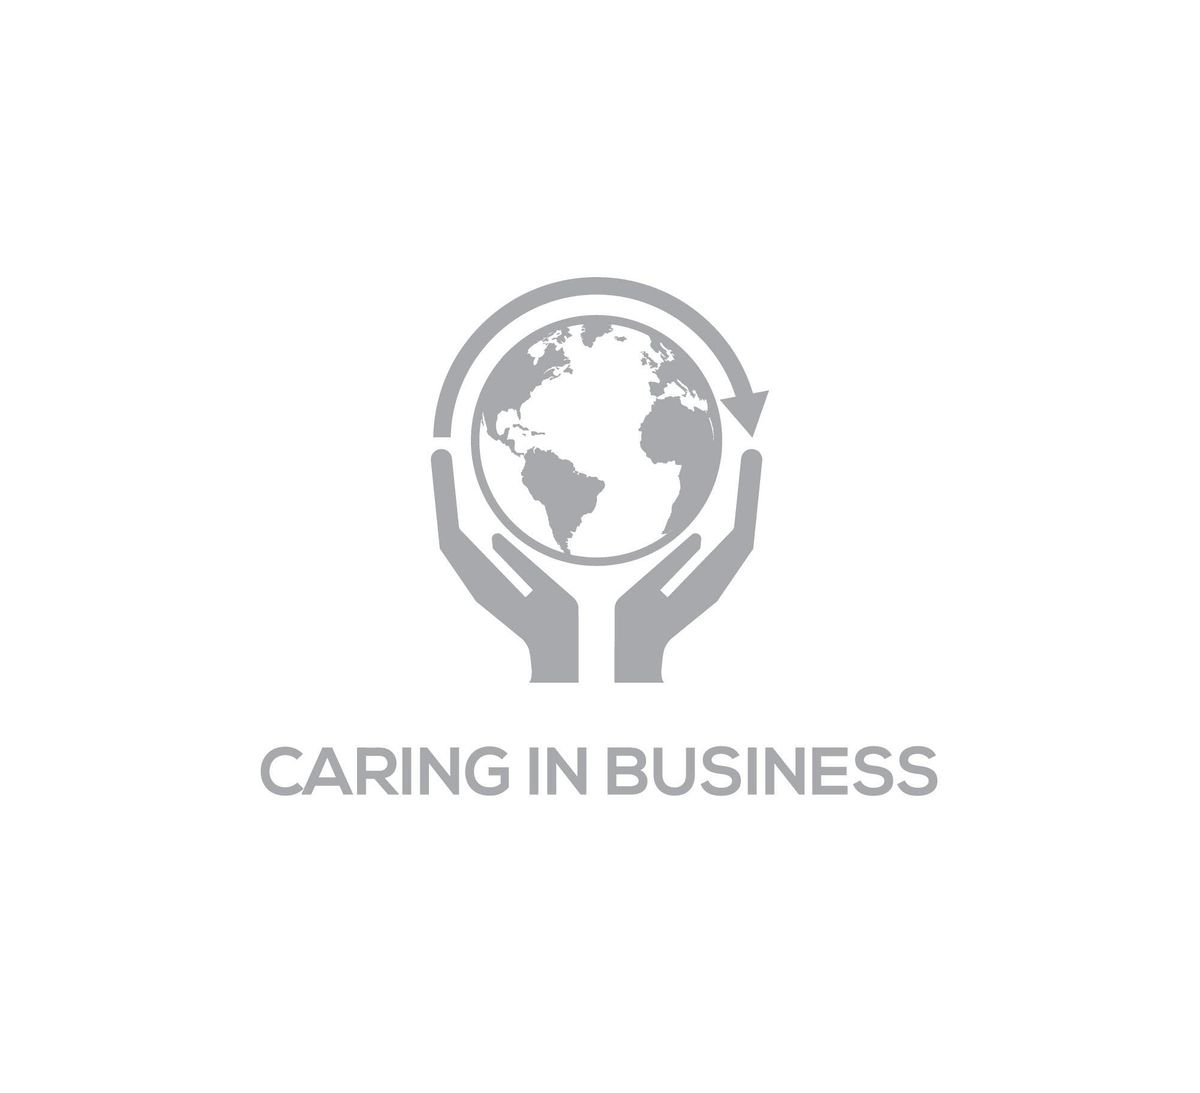 Caring In Business